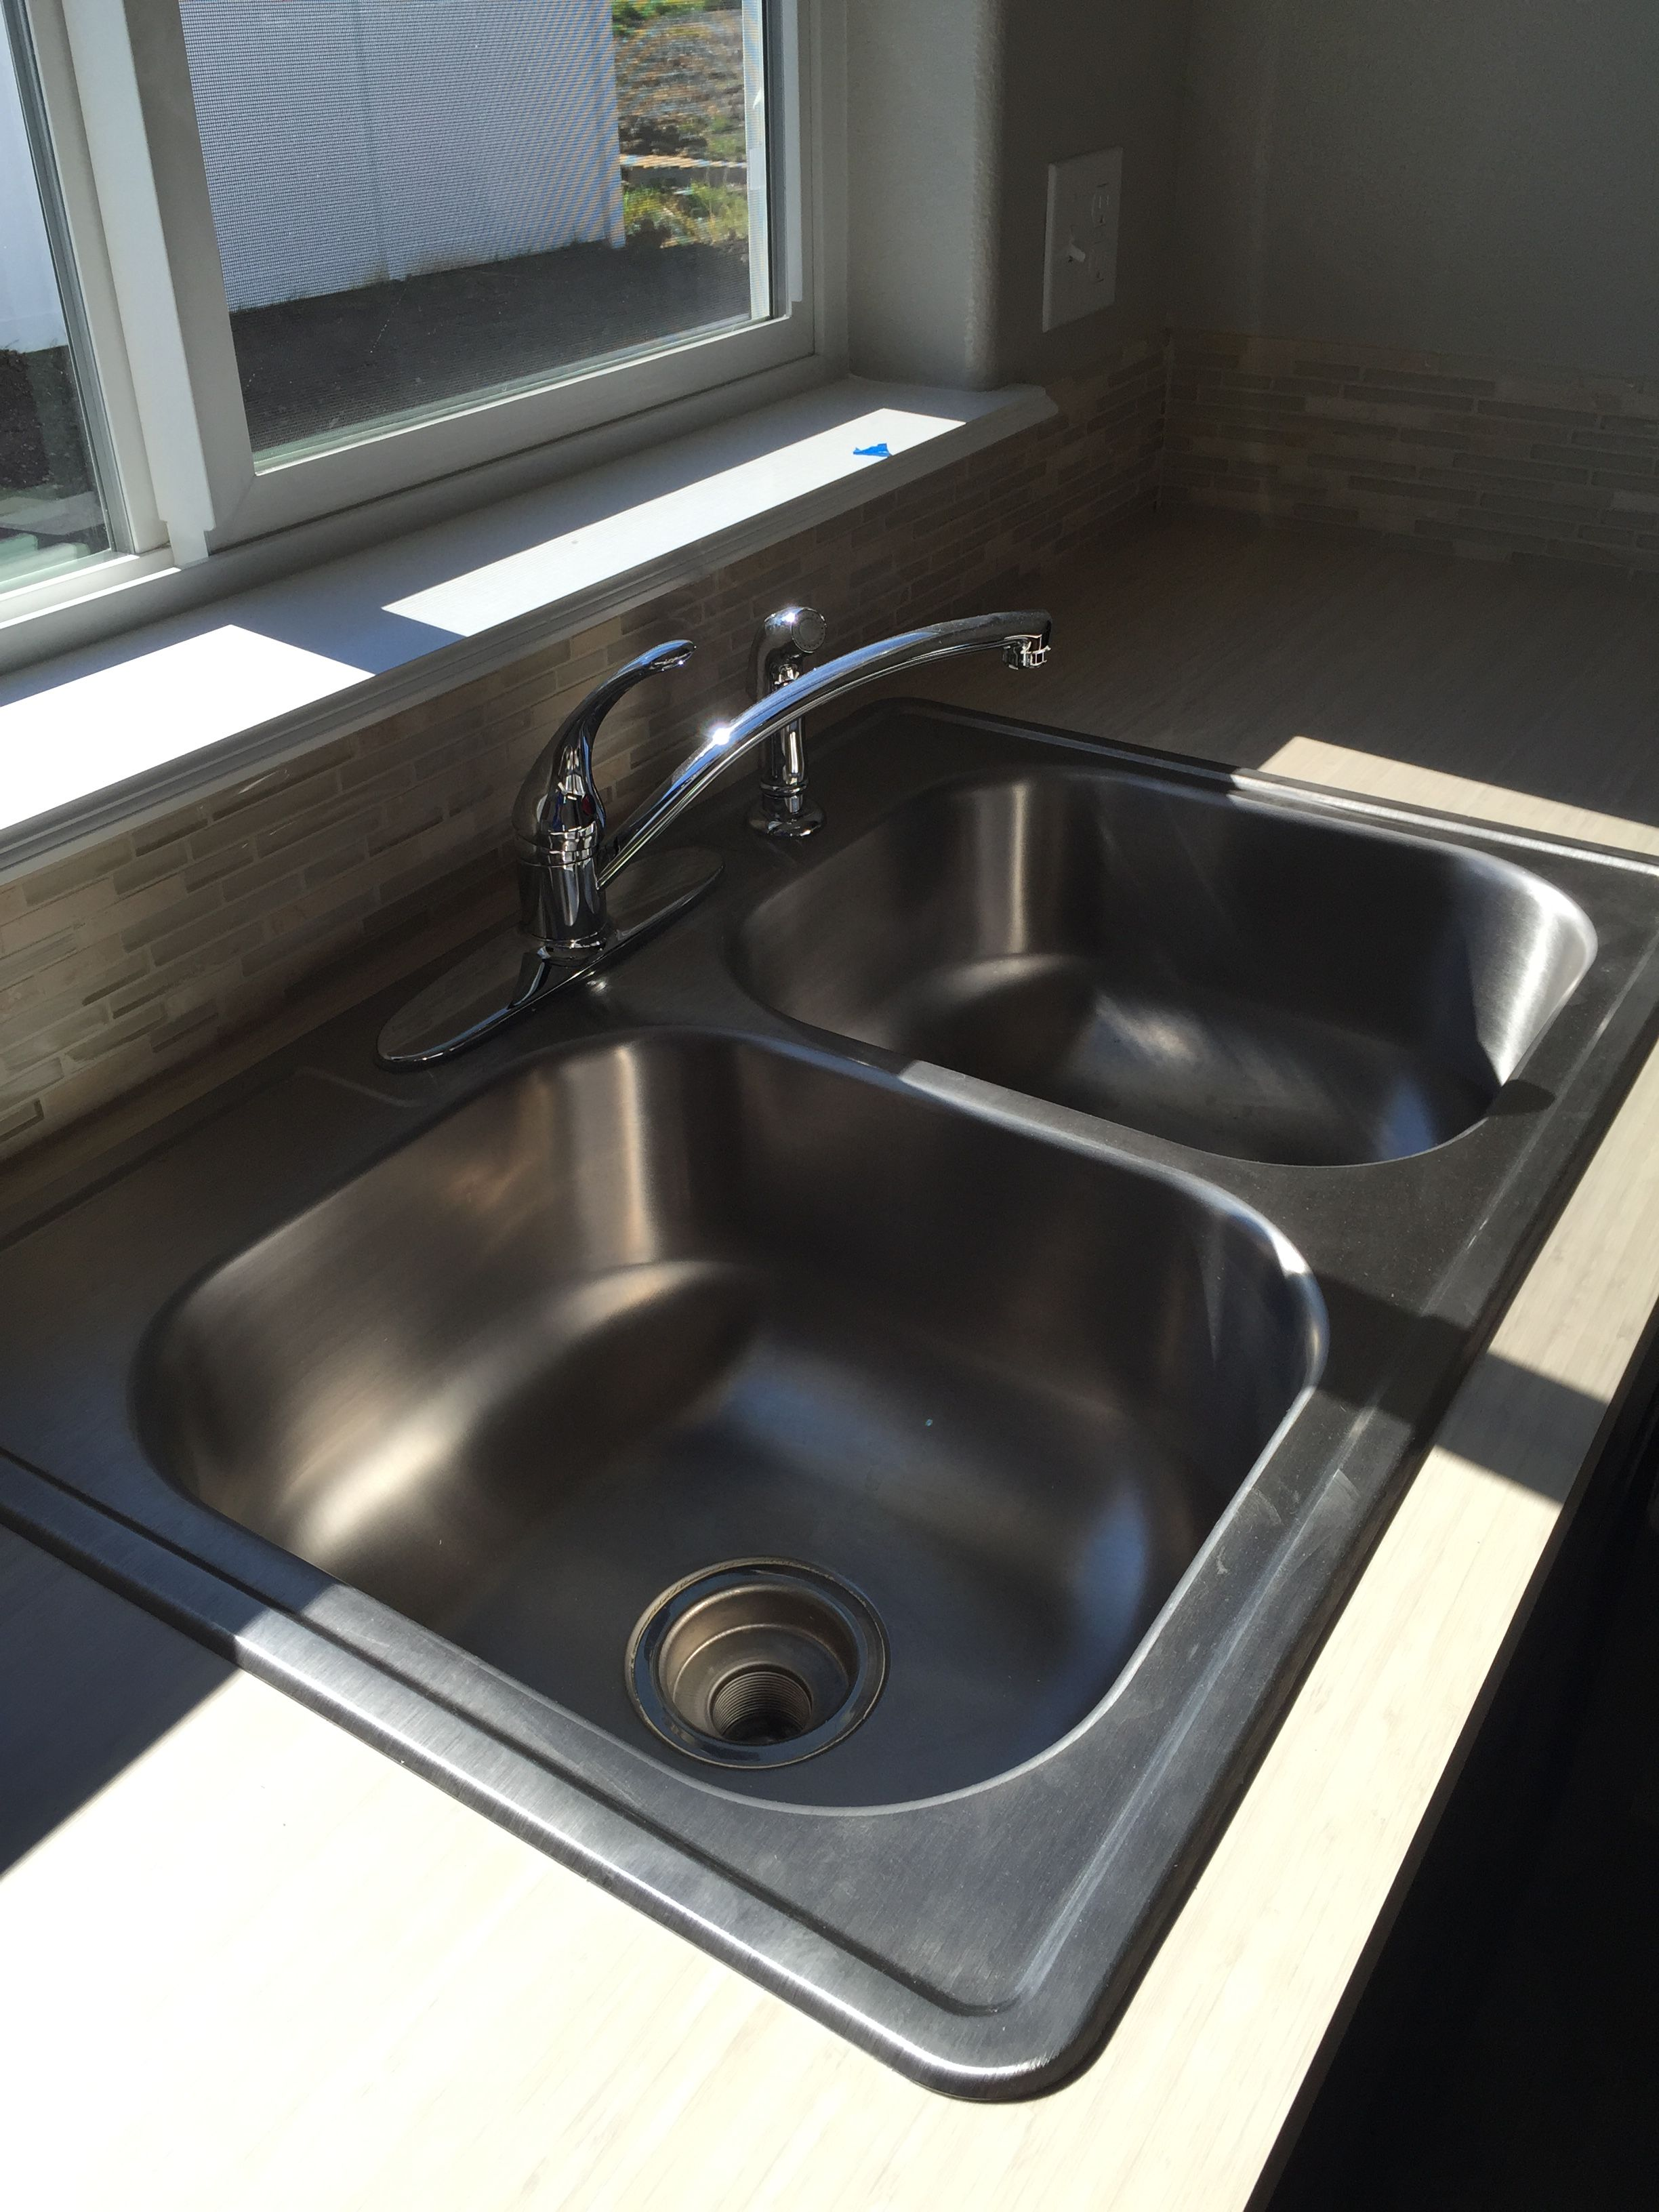 CBH Homes standard deep stainless steel sink with standard faucet for Legacy collection.